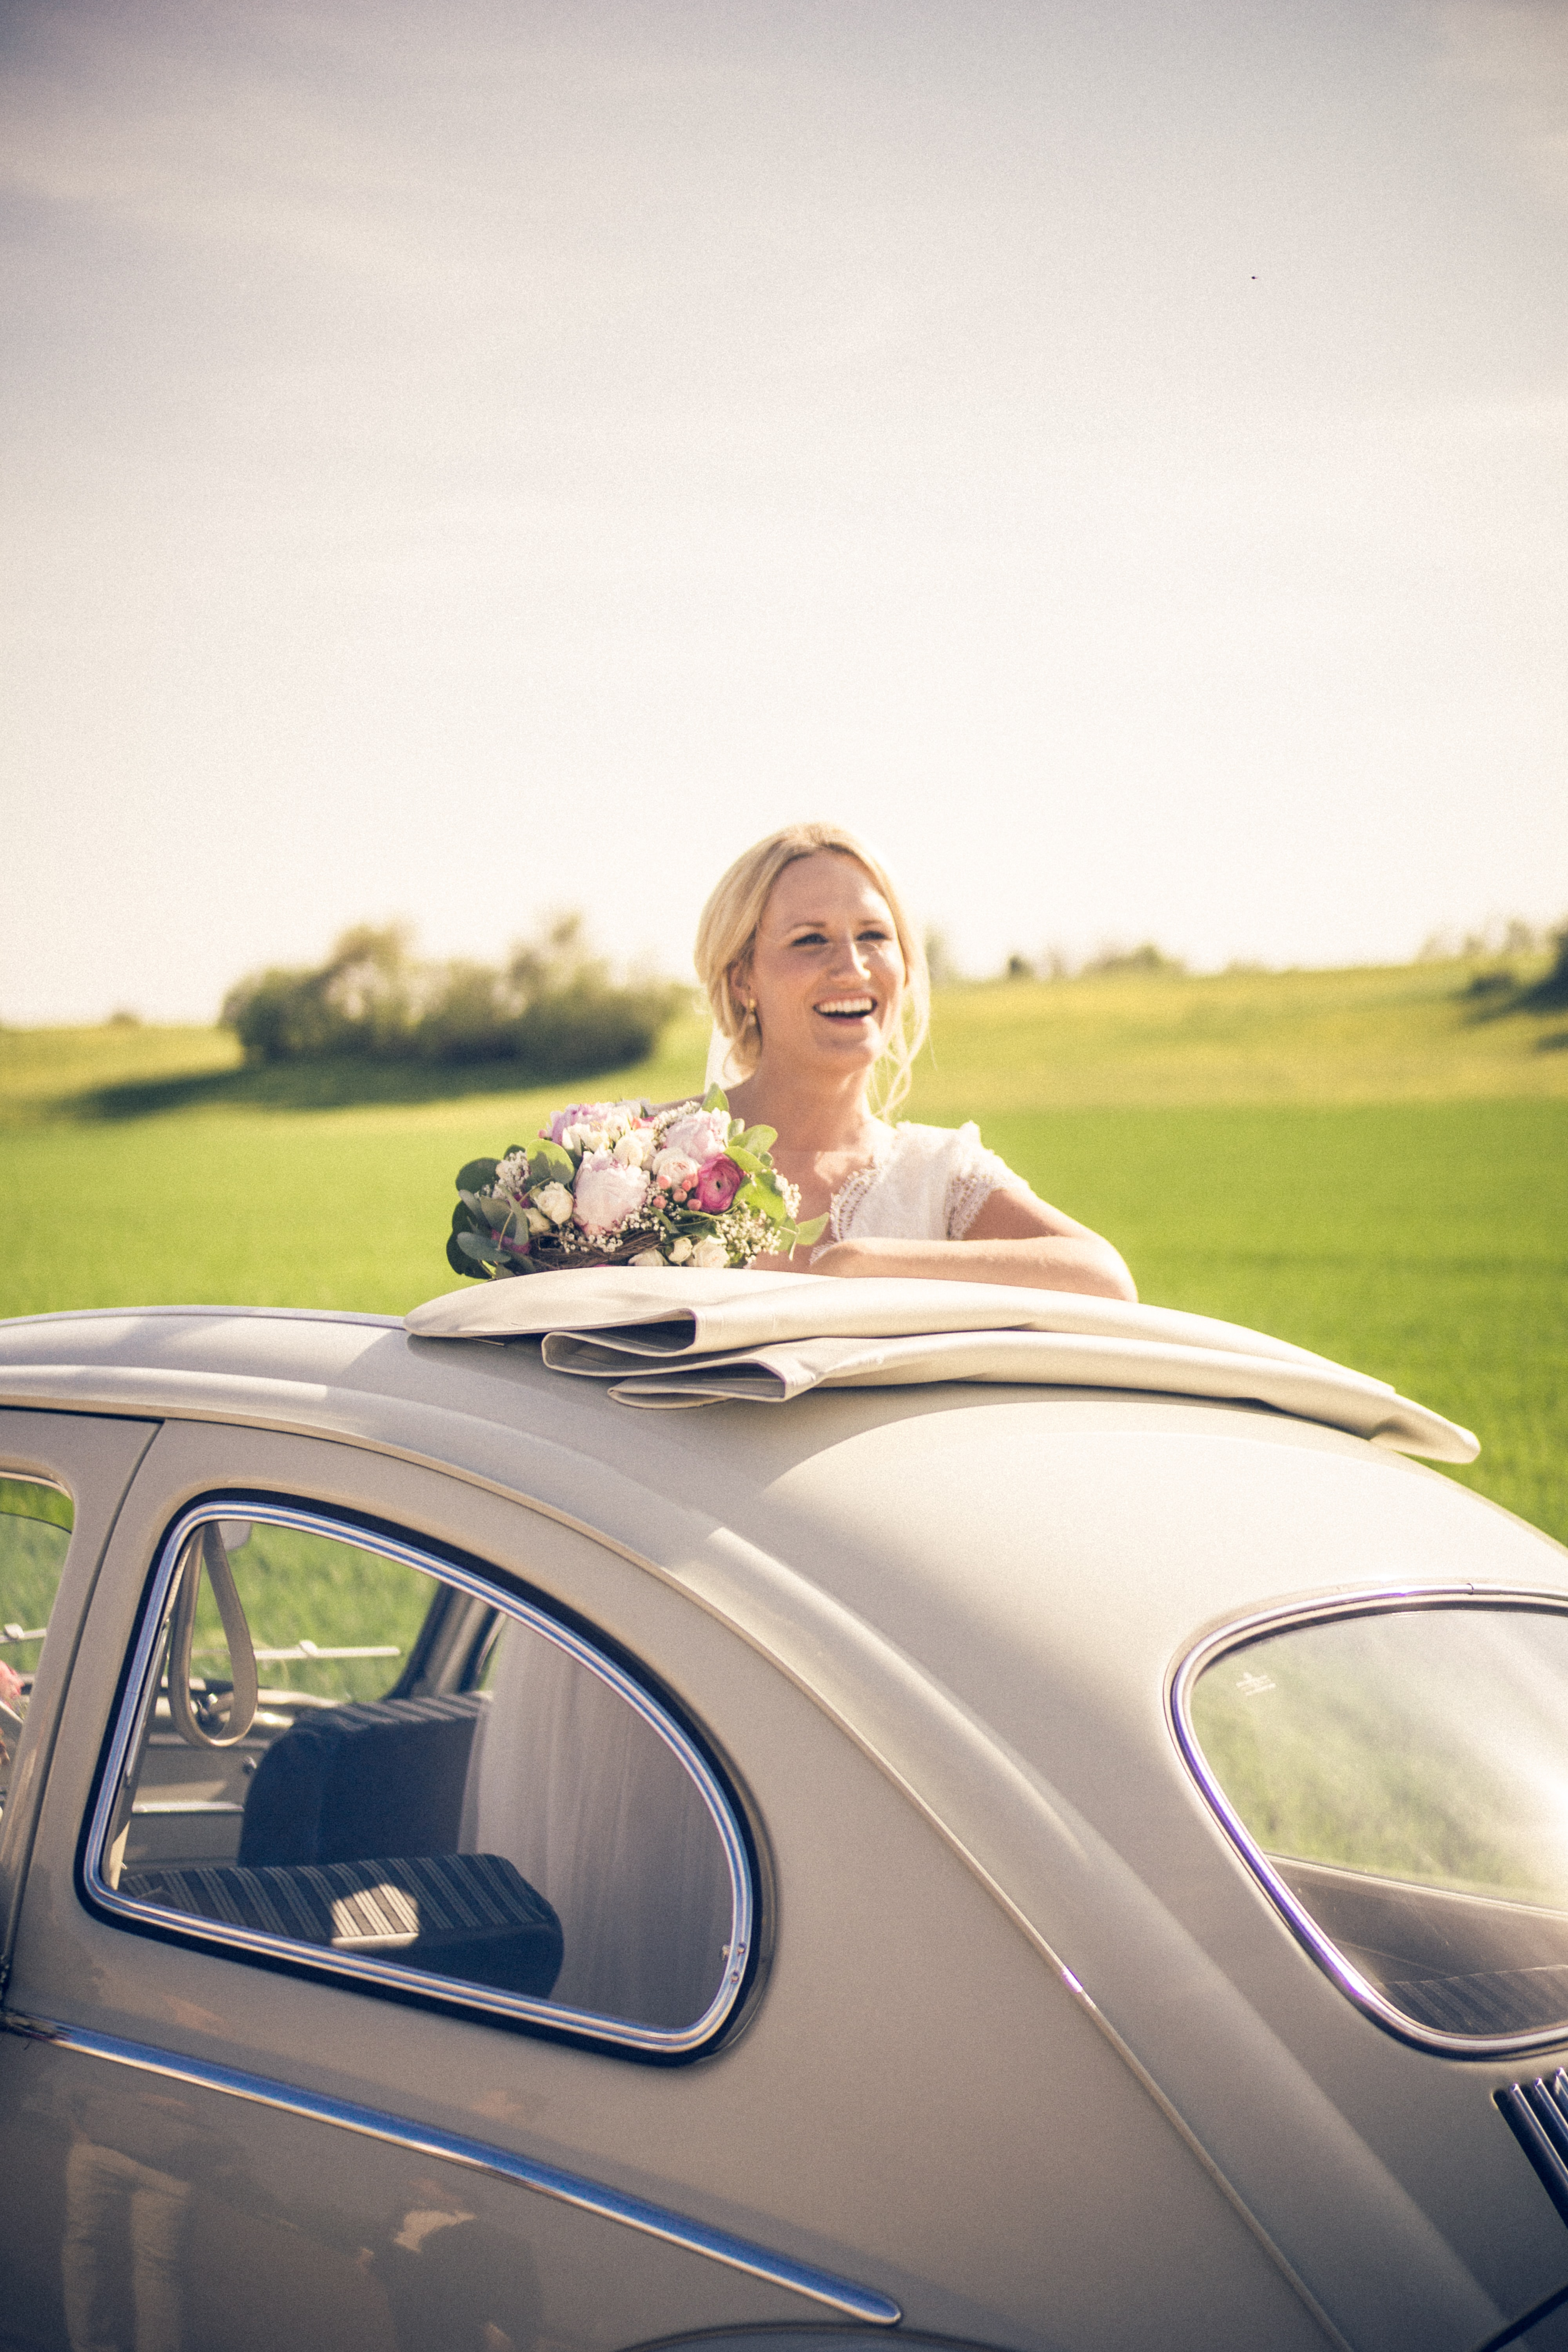 woman in wedding gown standing on white coupe